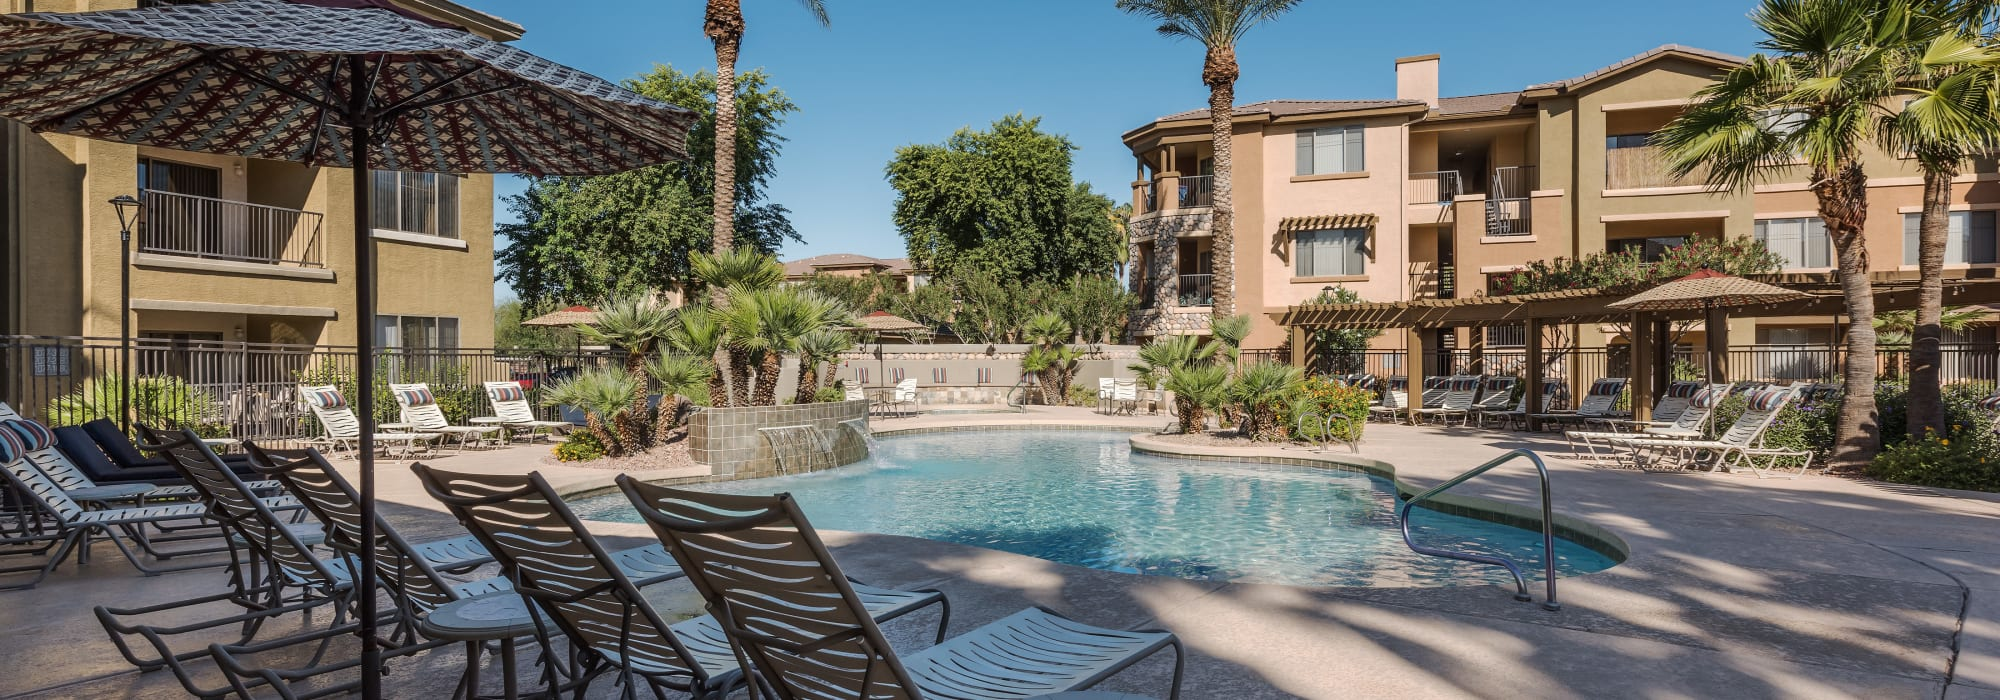 Apartments with resort stile swimming pool at Azul at Spectrum in Gilbert, Arizona